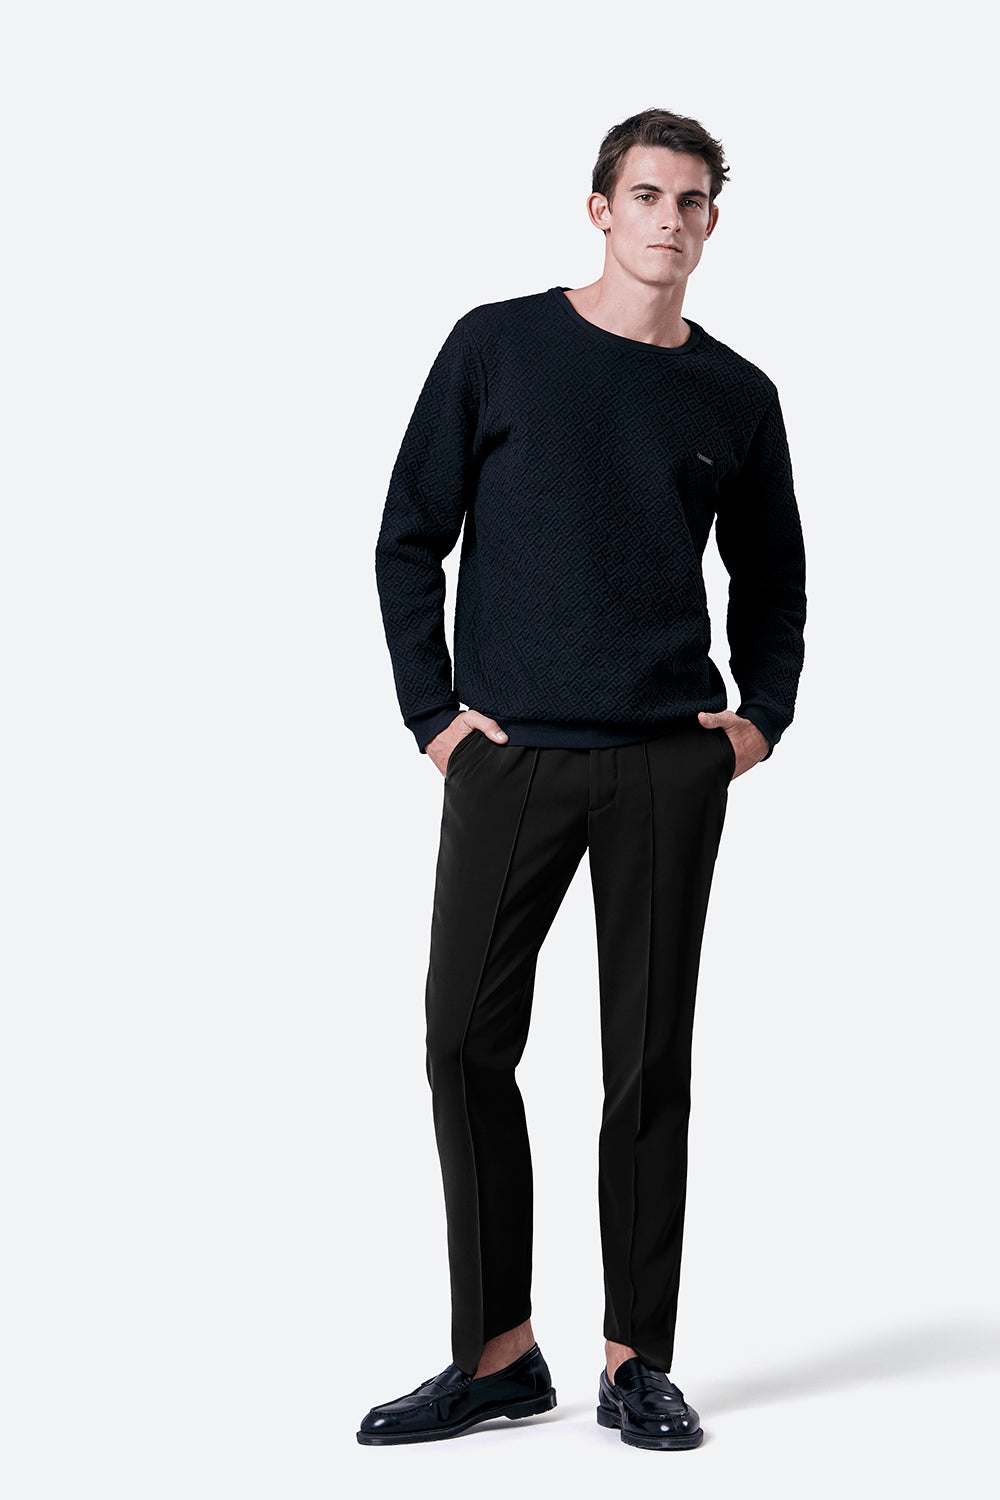 Laprida Gaucho Pattern Sweatshirt in Black